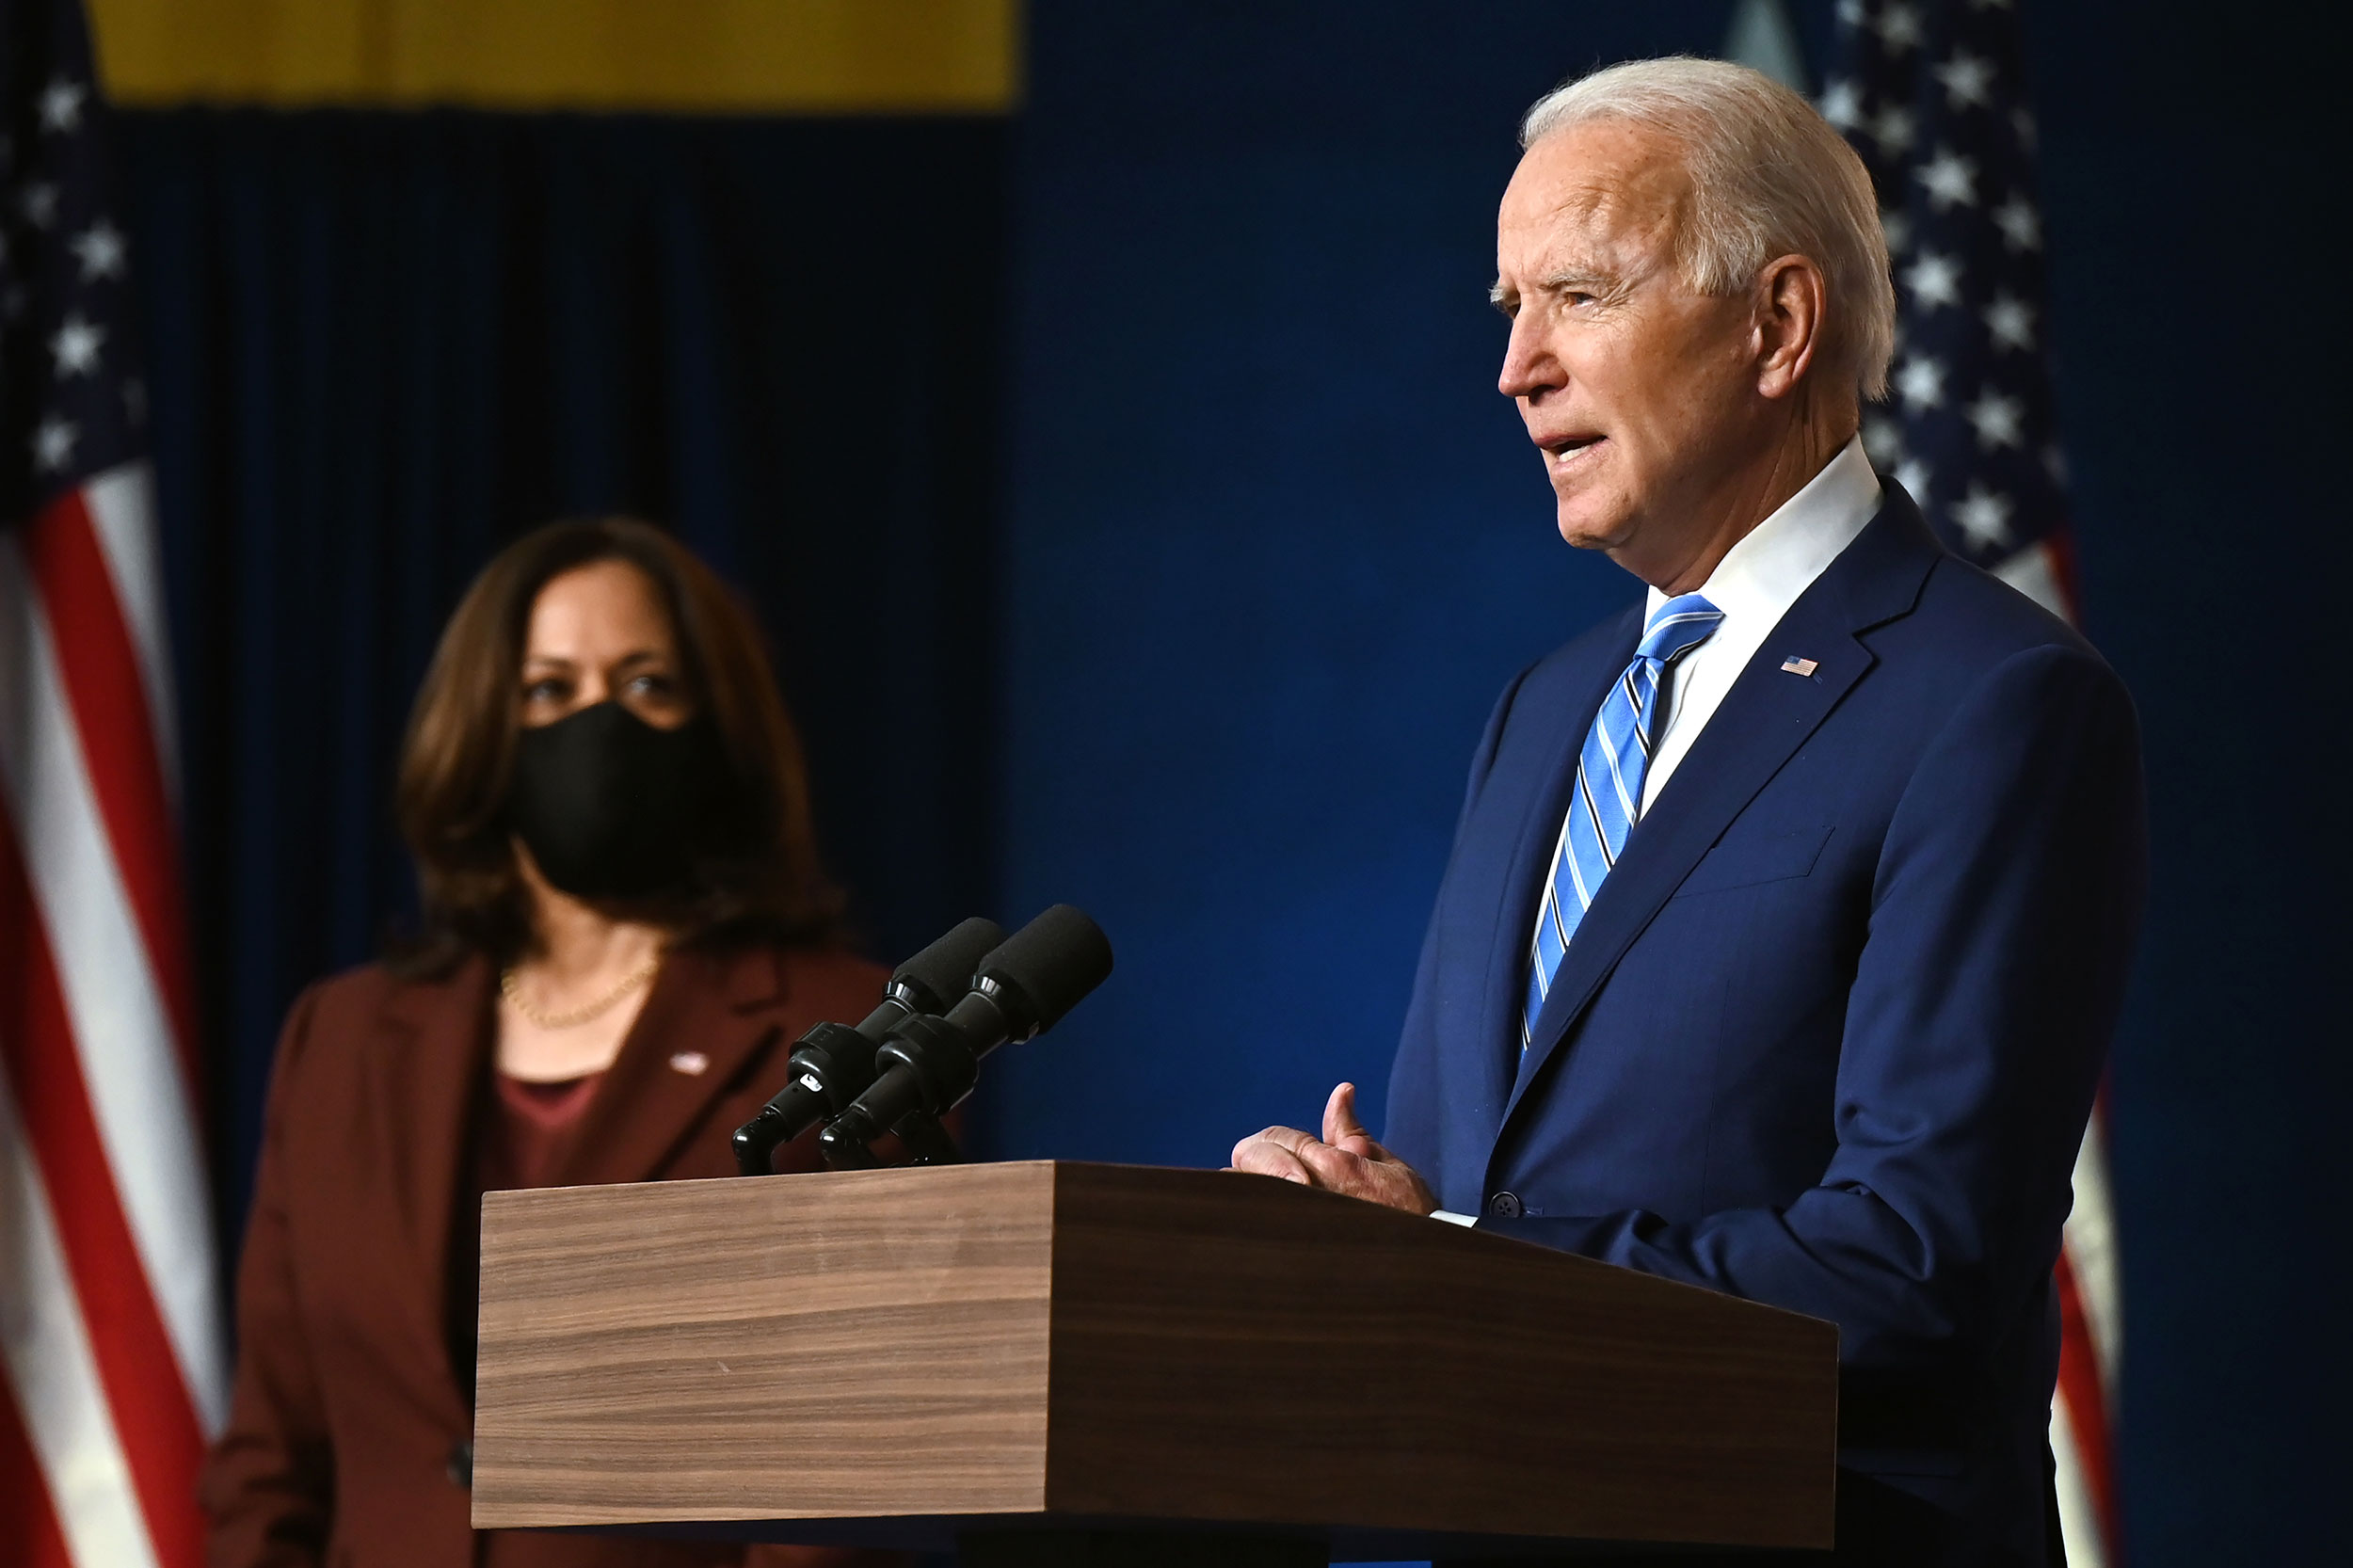 Joe Biden and Kamala Harris speak at the Chase Center in Wilmington, Delaware, on November 4.